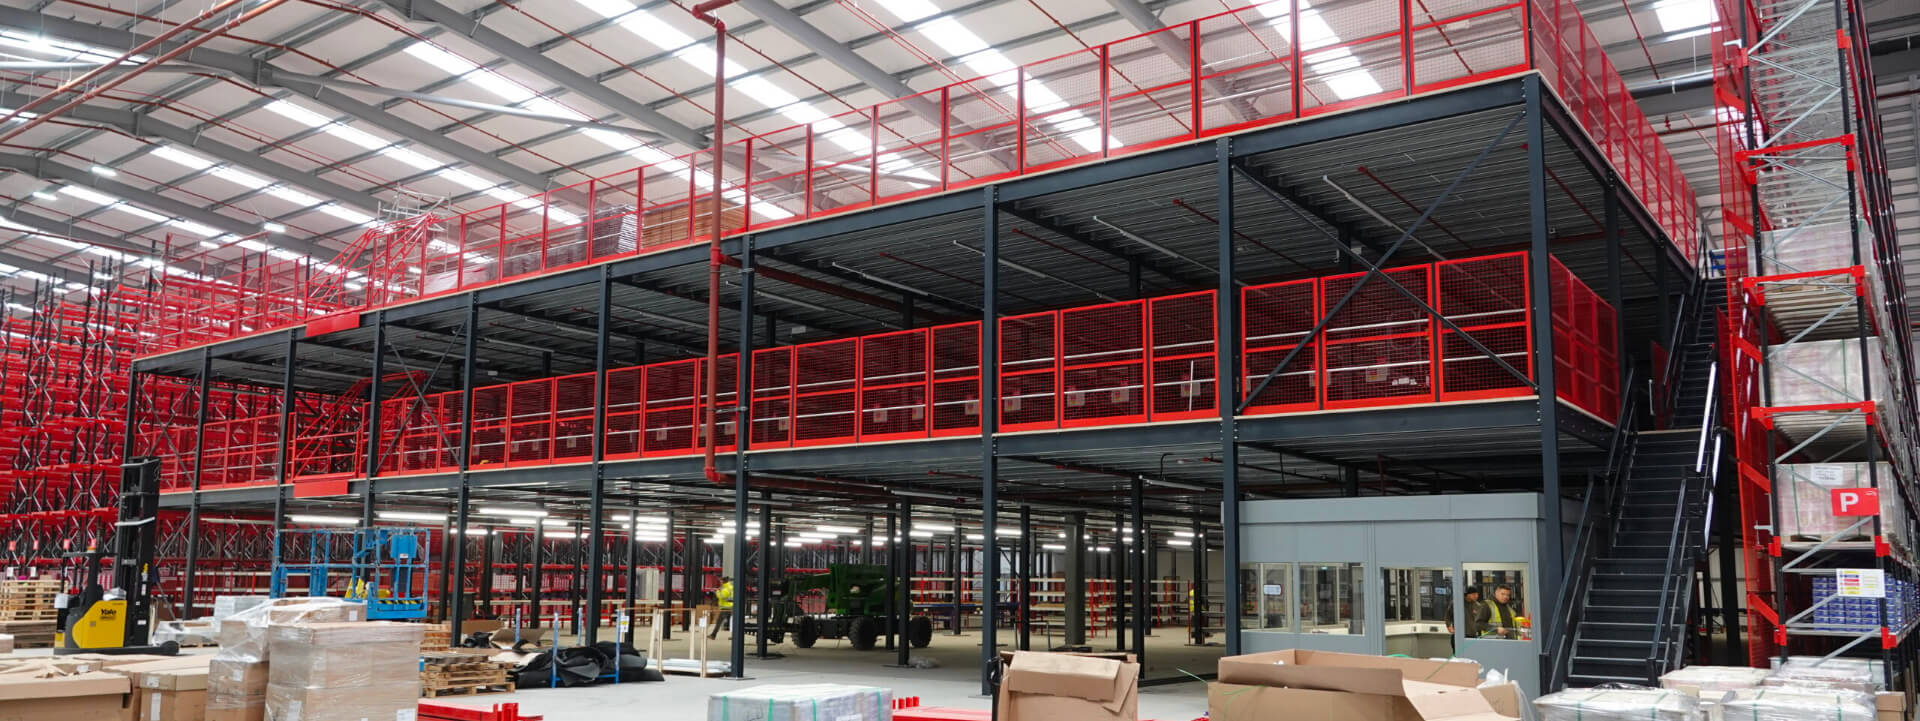 Mezzanine Flooring in a warehouse